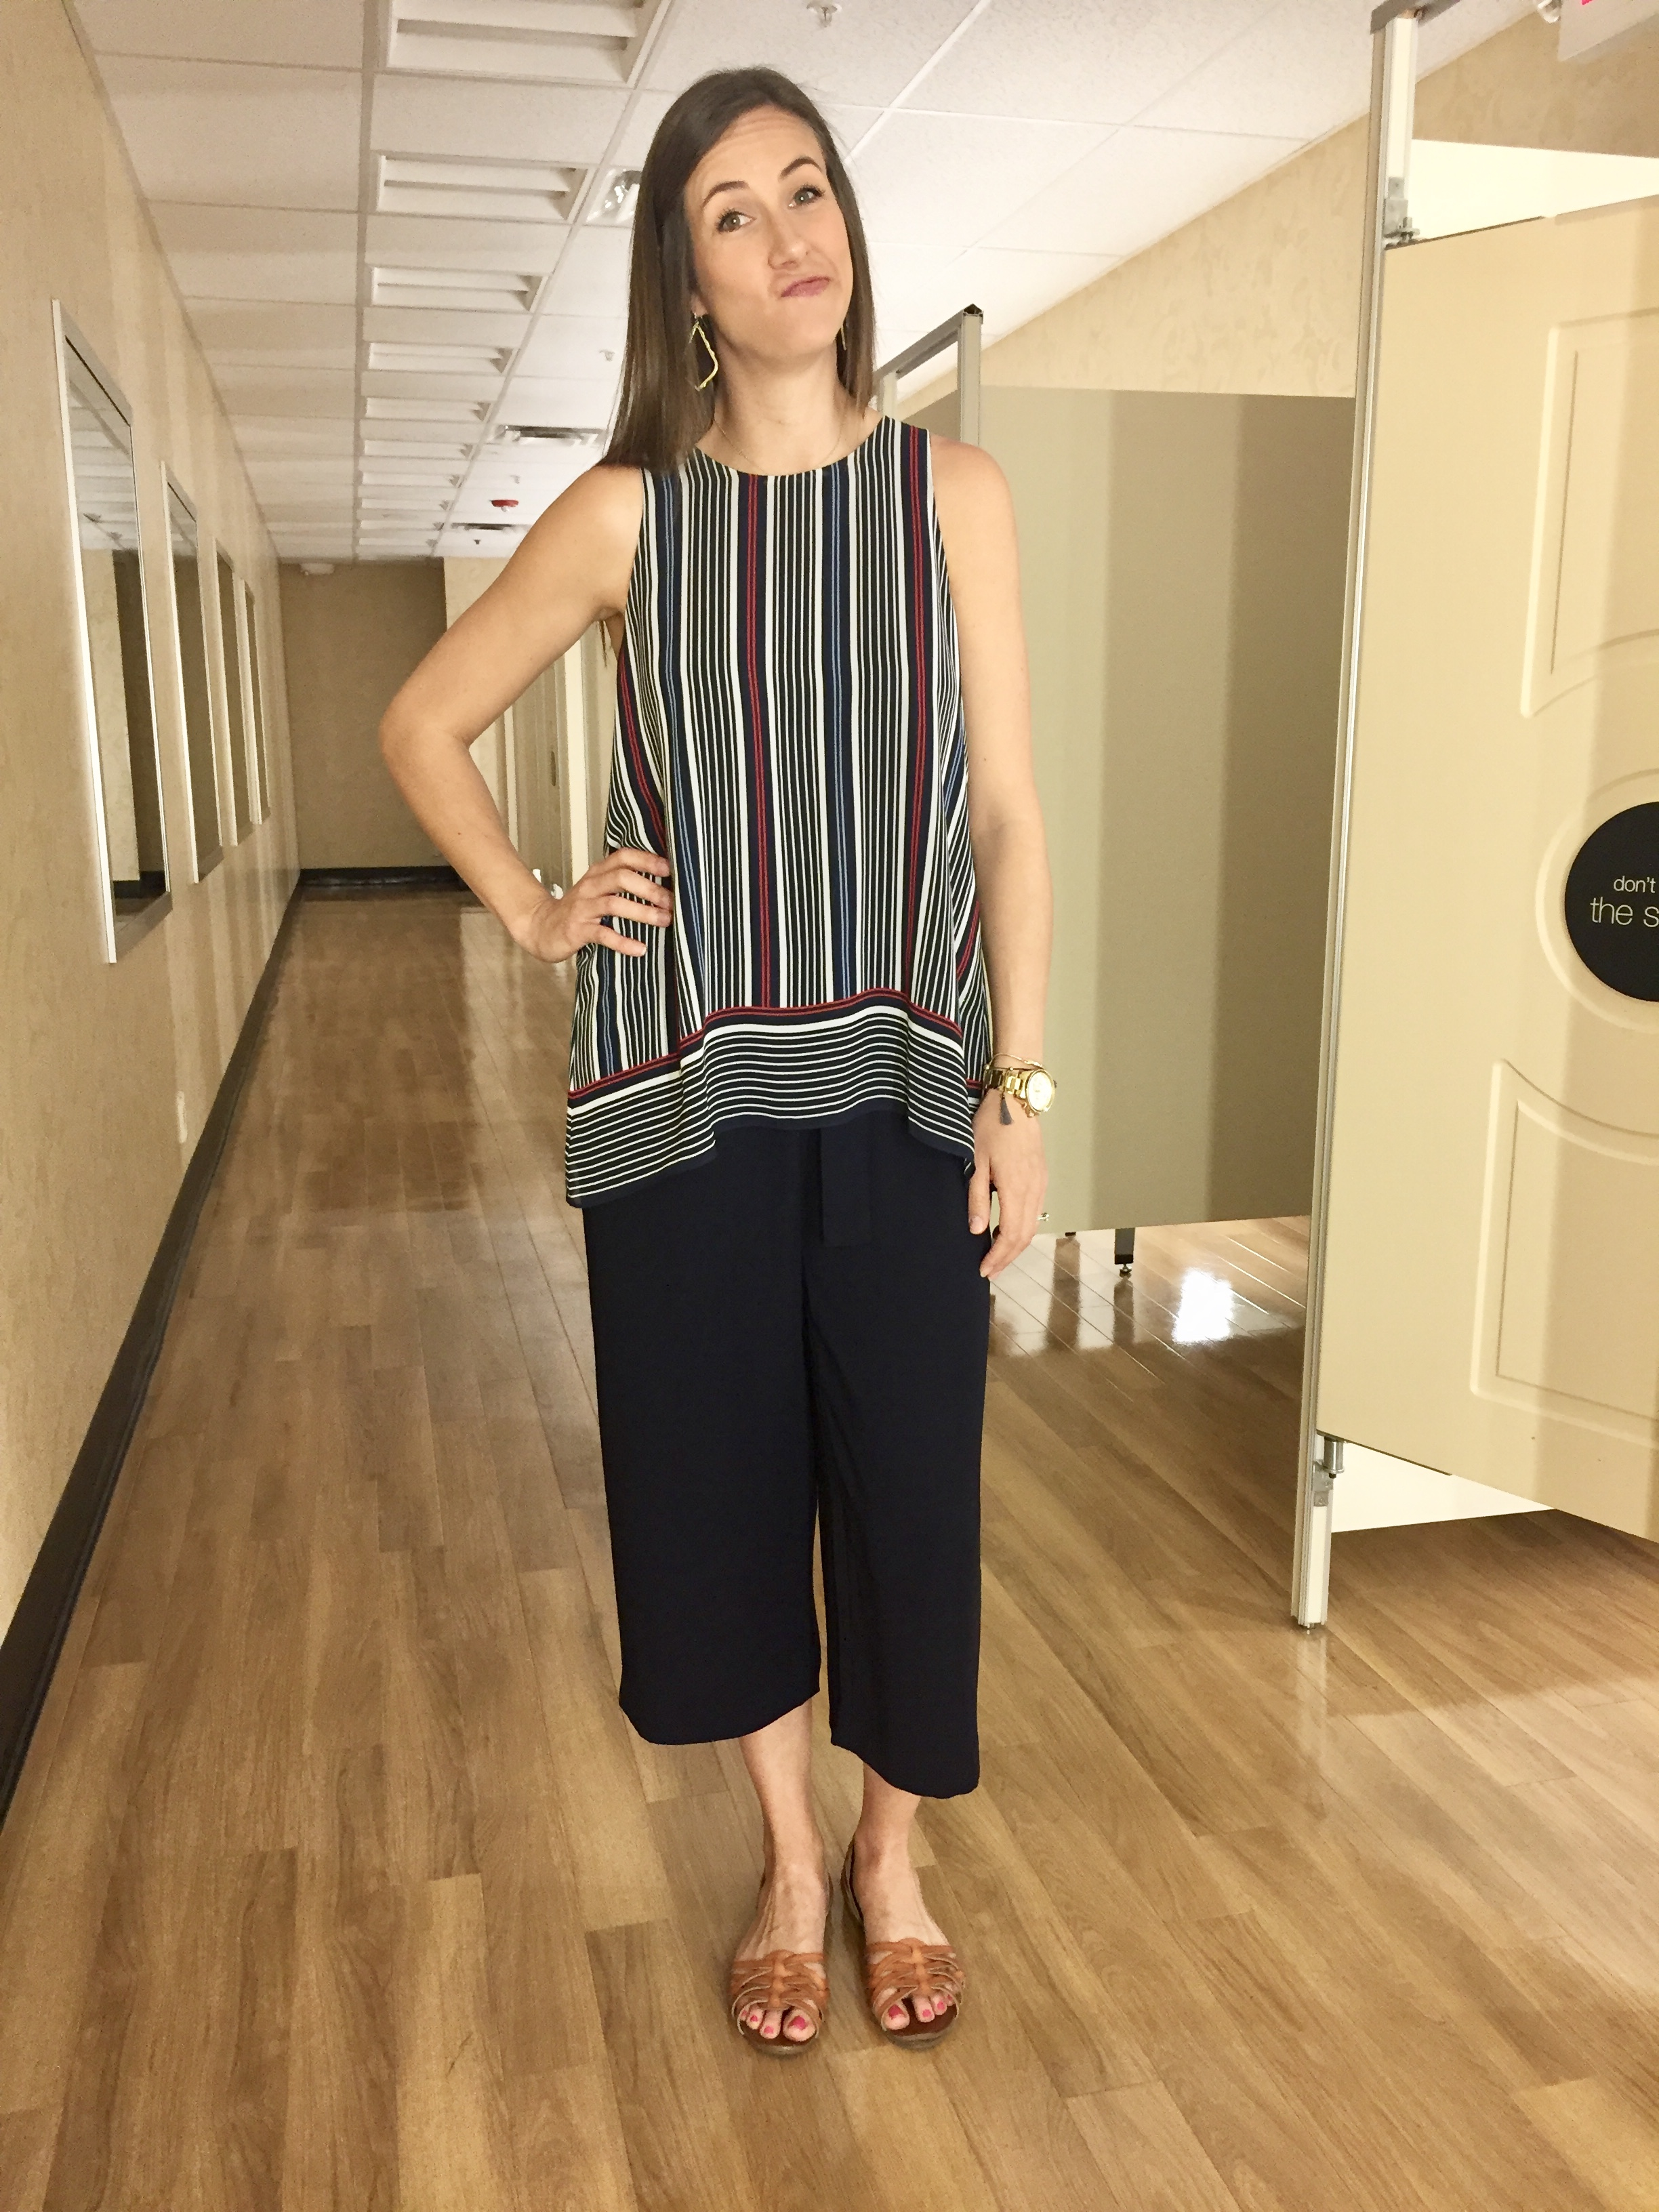 before, striped tank top, style session, needs work, method39, style advice, wardrobe stylist